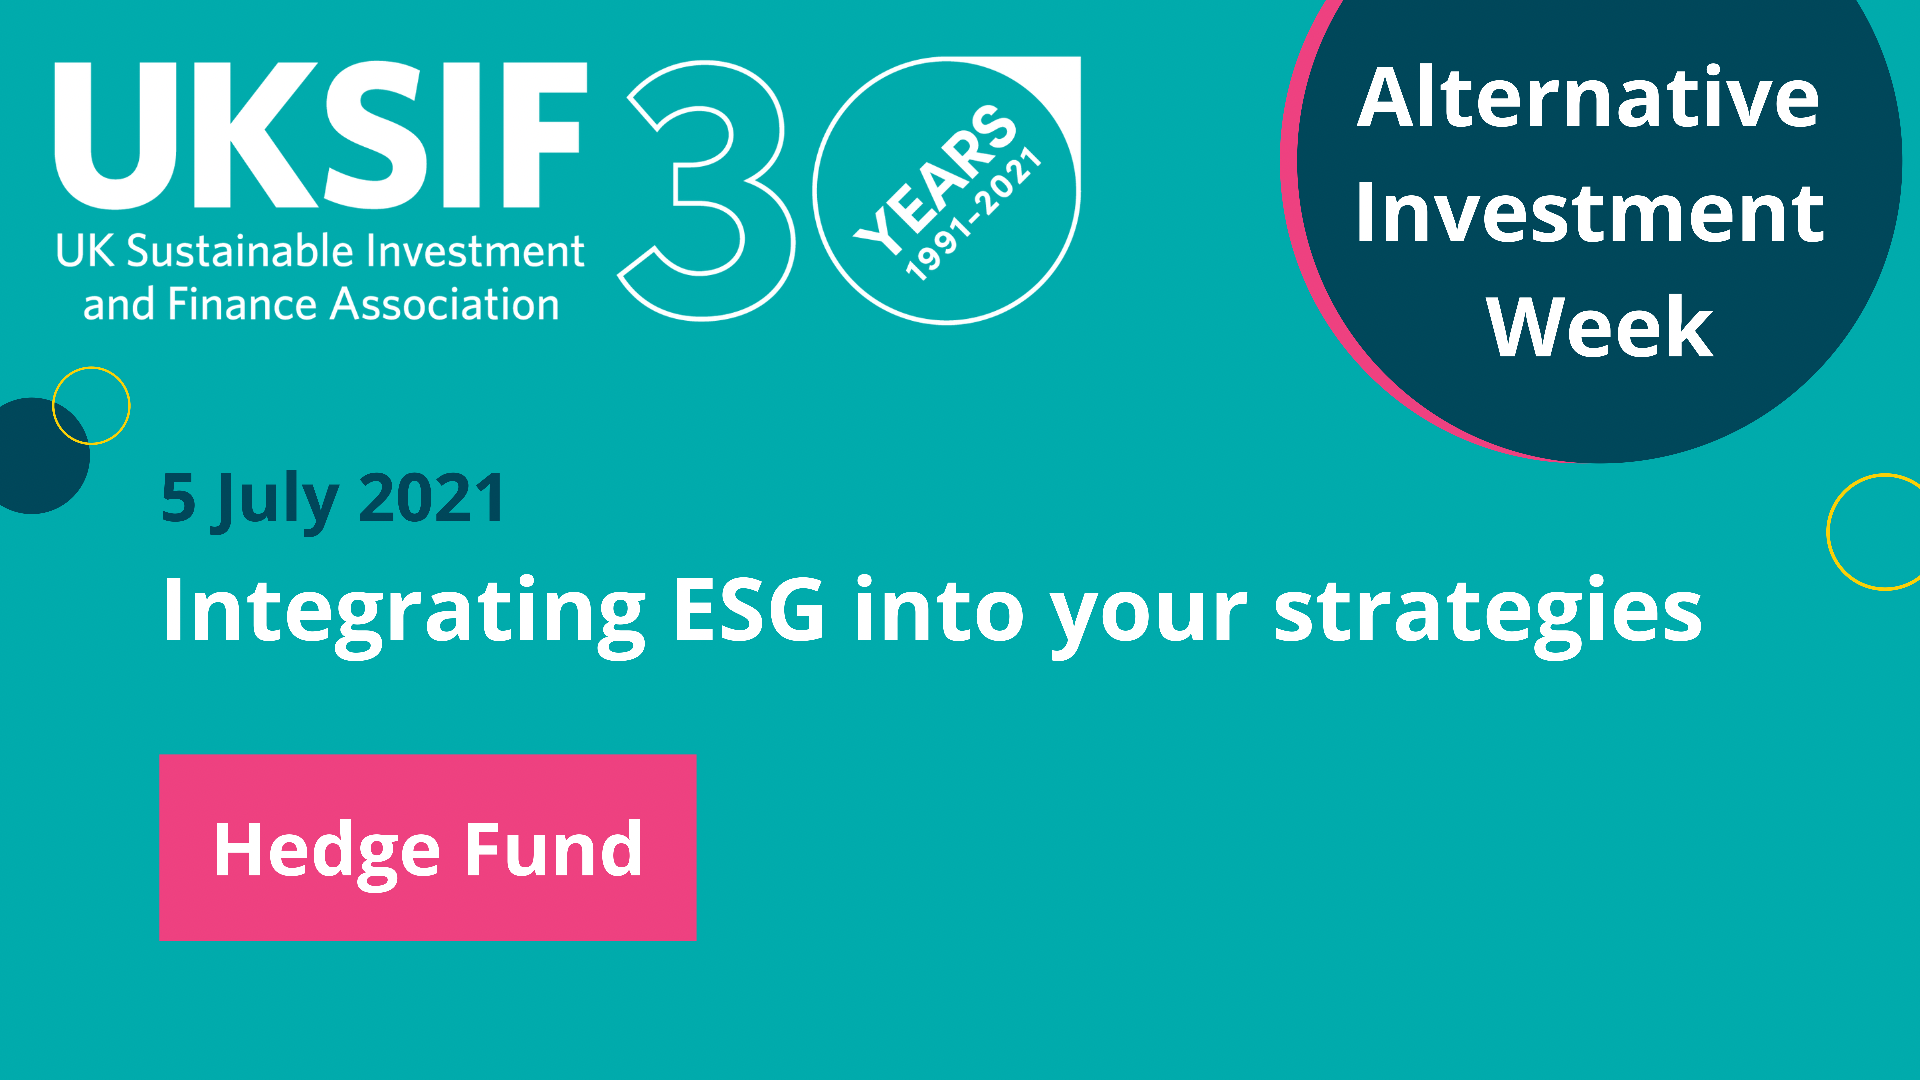 Implementing ESG in hedge fund strategies - Preview Image